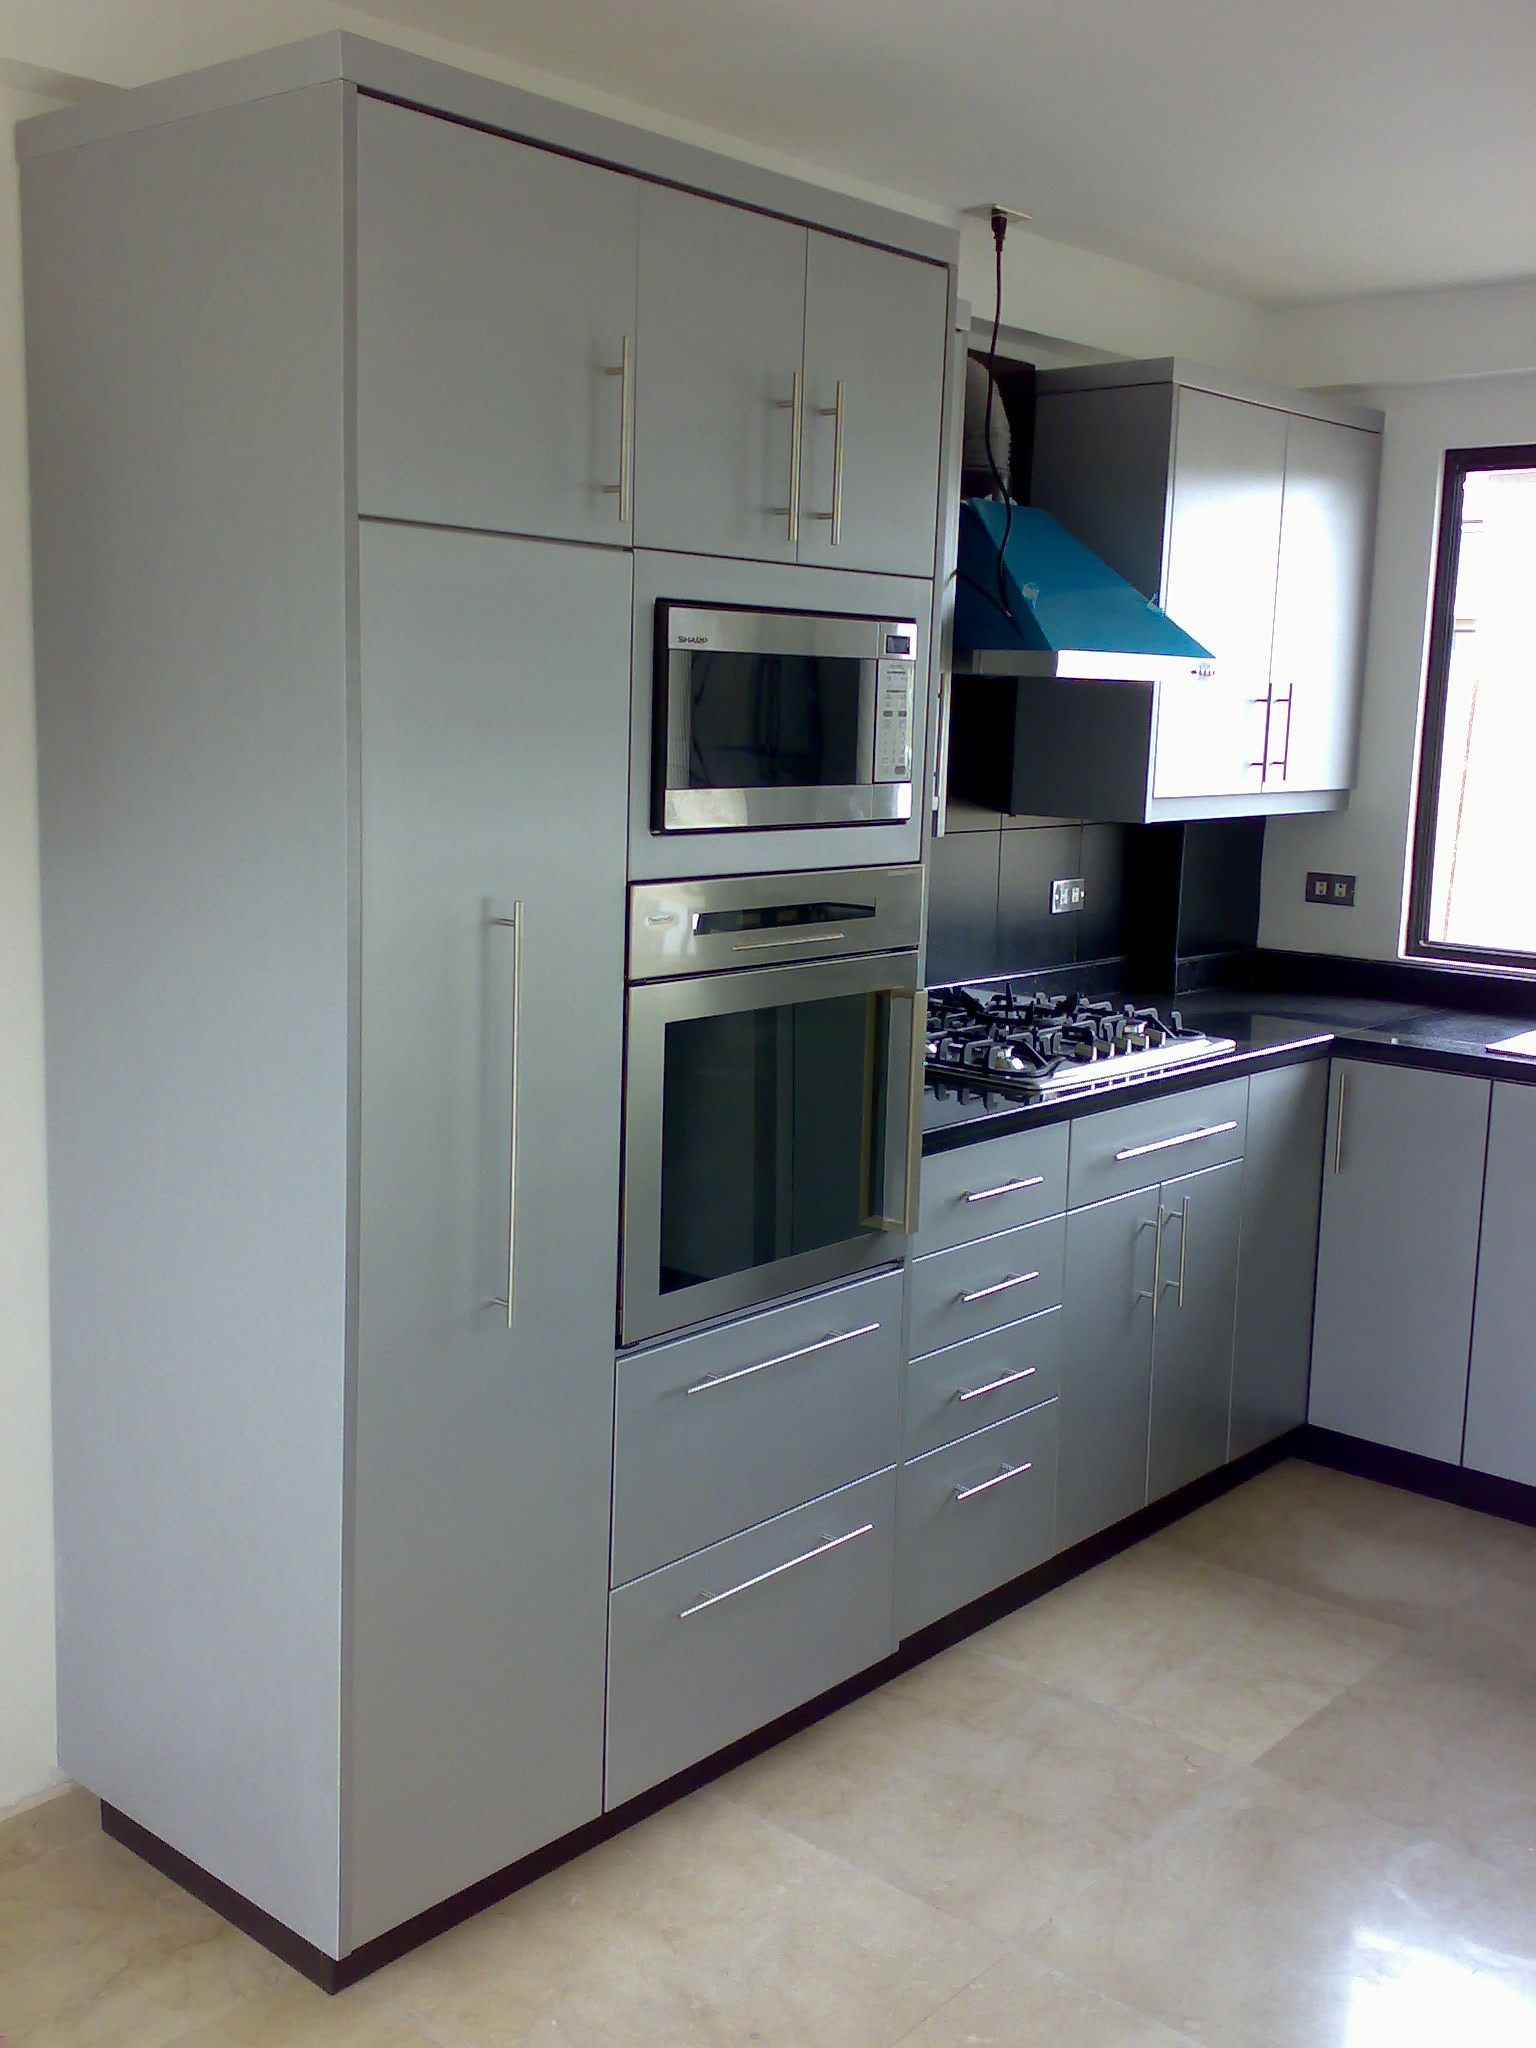 Kitchen With Pantry Built In Oven Microwave And Cooktop Kitchen